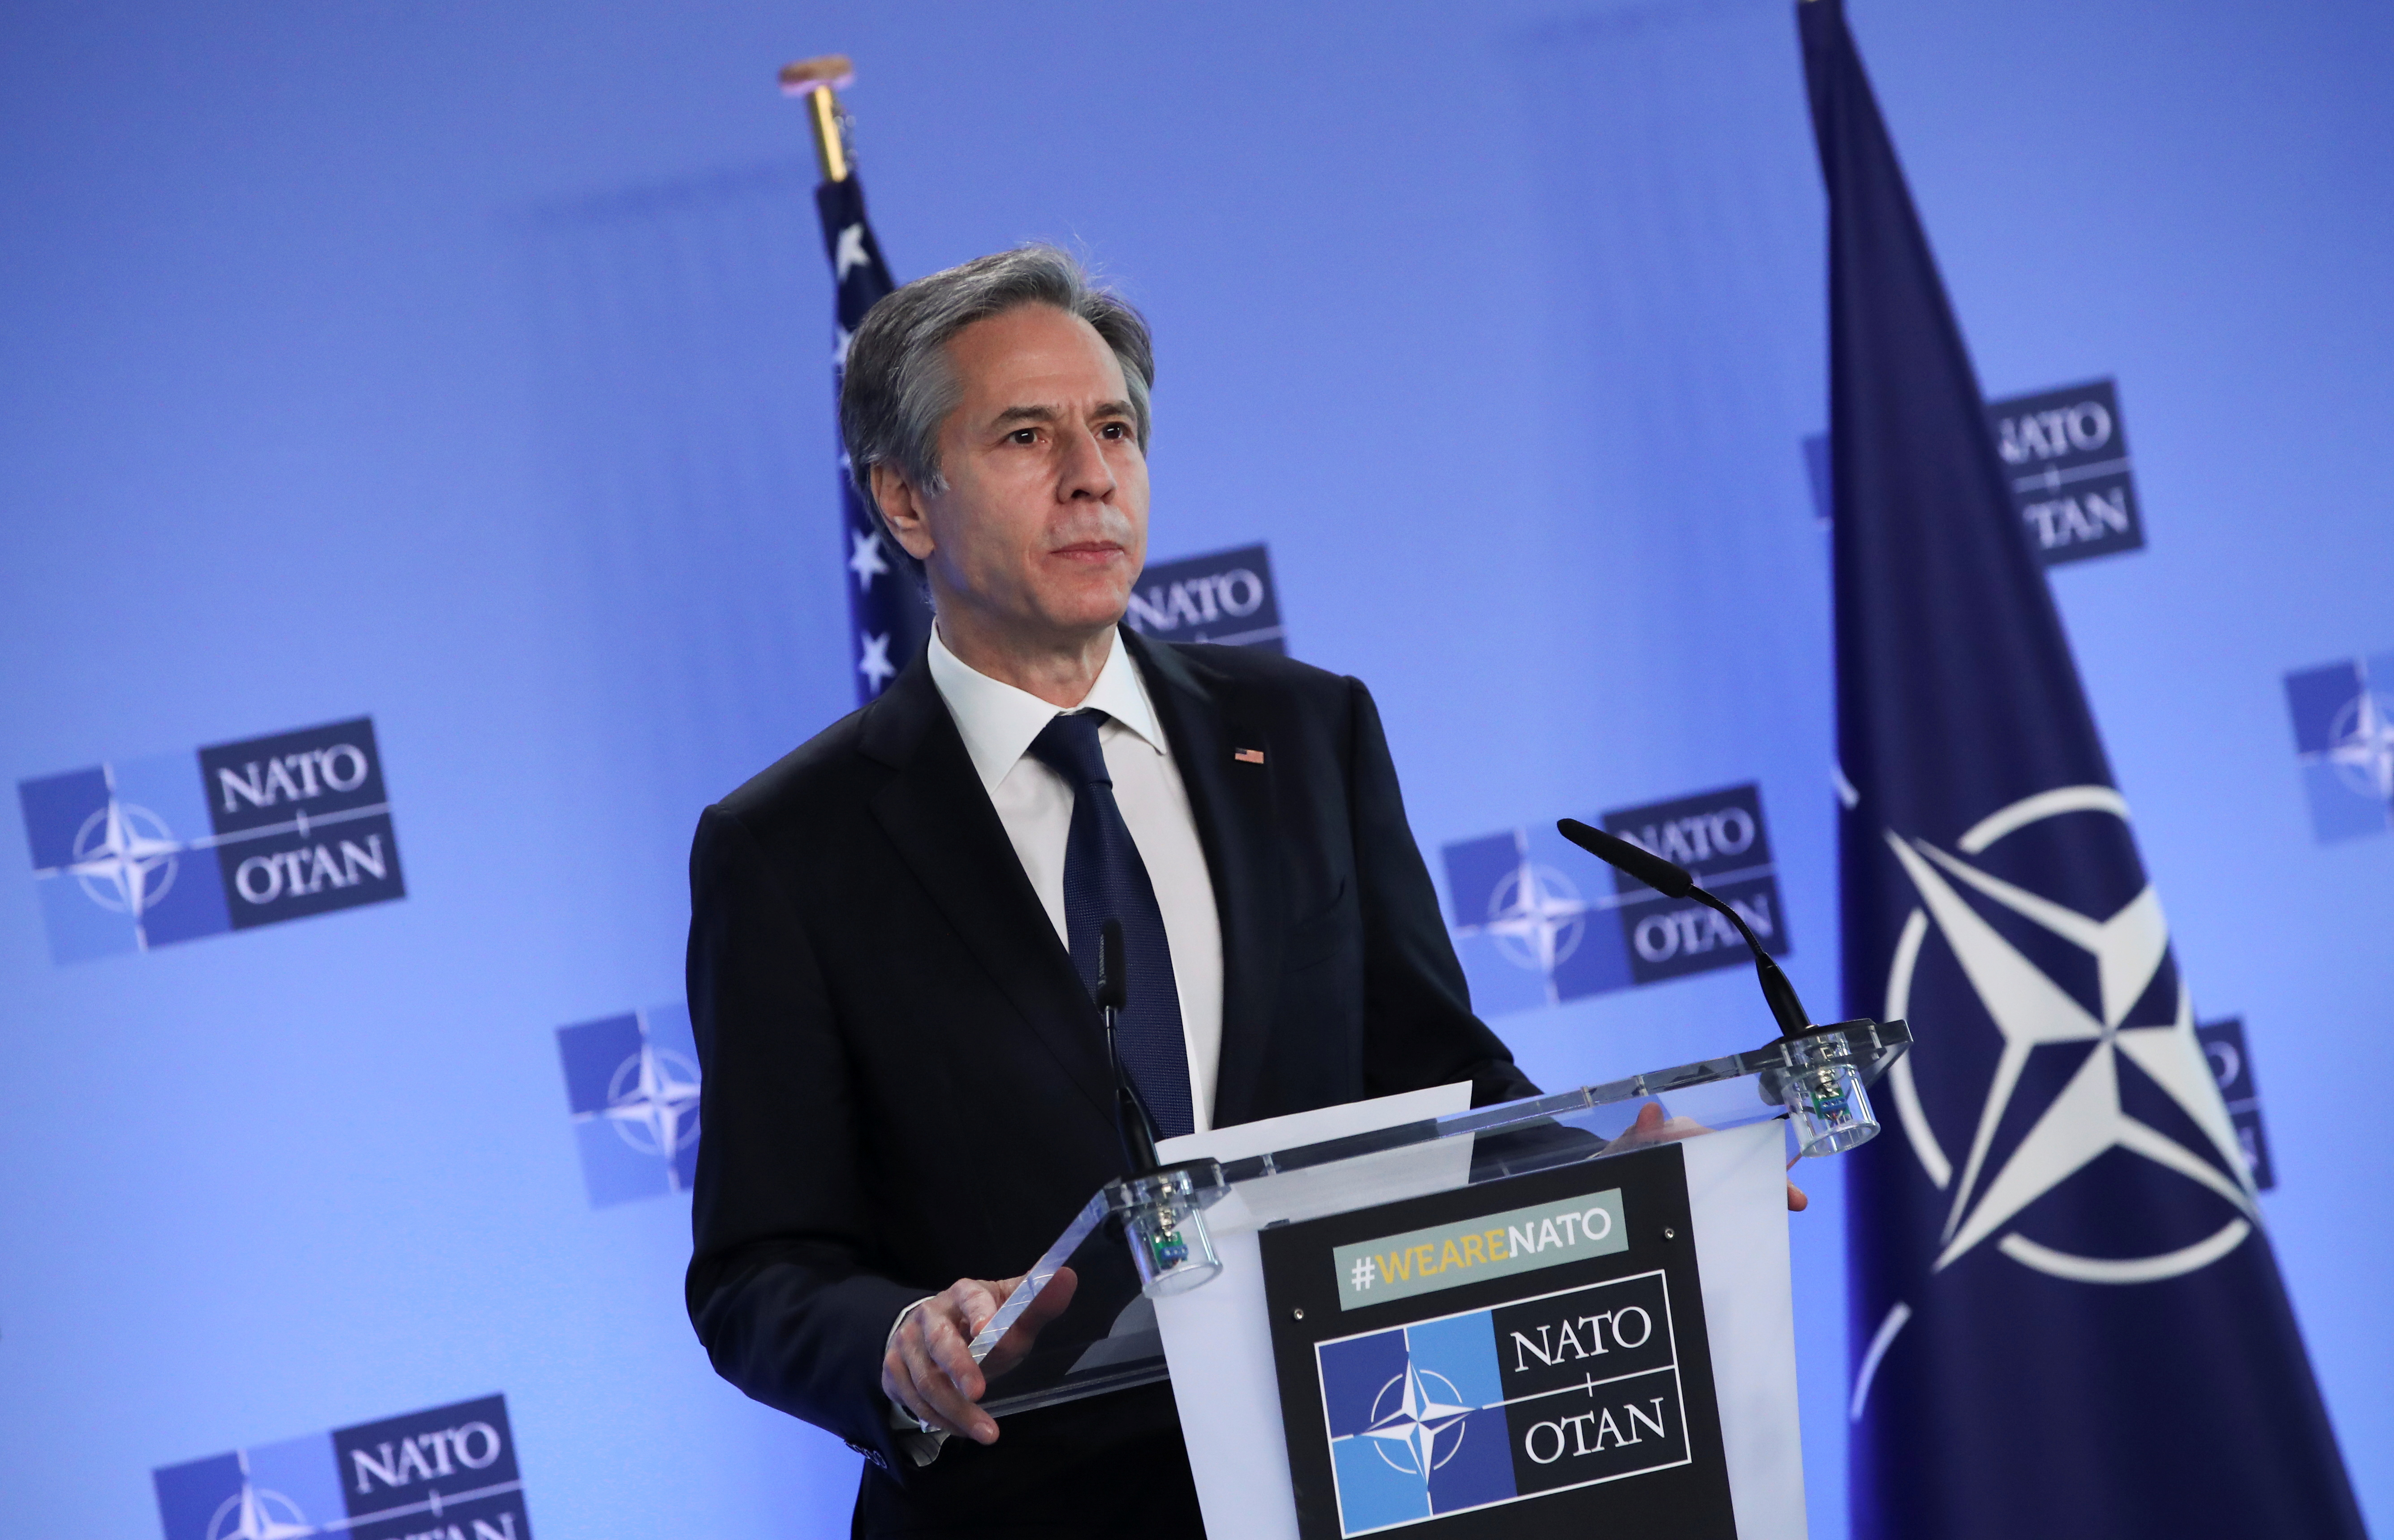 U.S. Secretary of State Antony Blinken delivers remarks during a NATO Foreign Ministers' meeting at the Alliance's headquarters in Brussels, Belgium March 23, 2021. REUTERS/Yves Herman/Pool